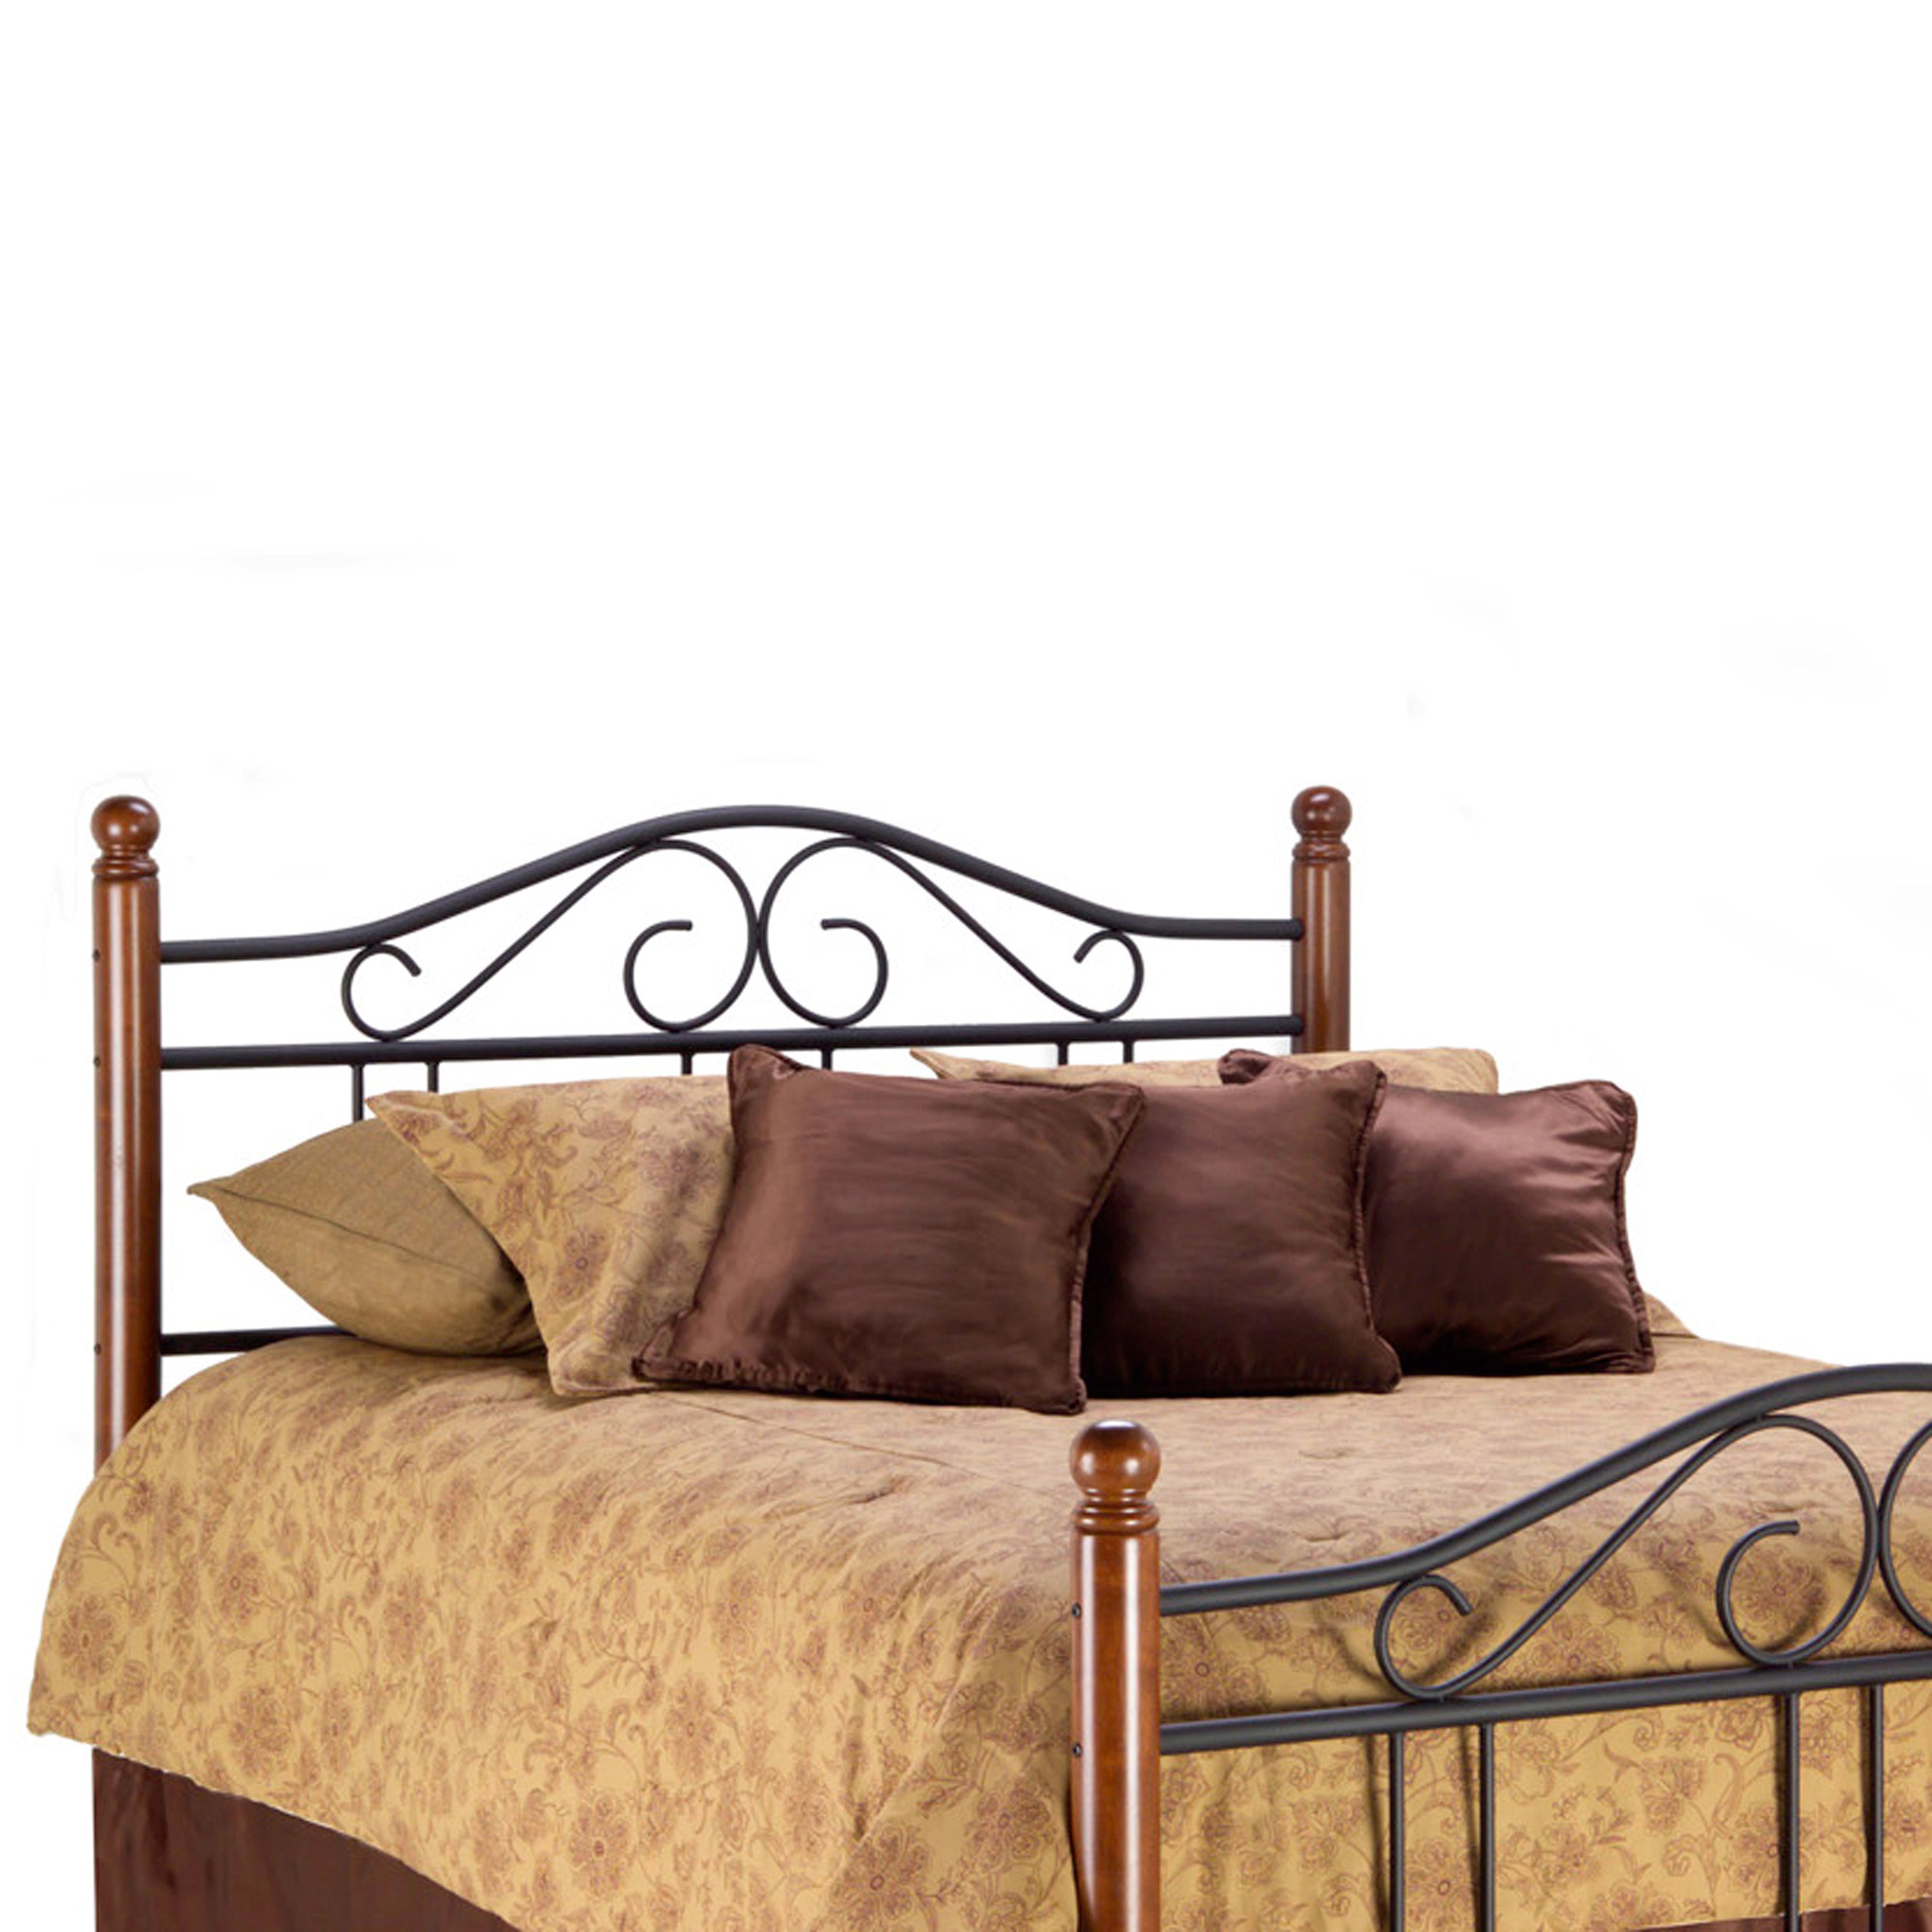 wood and iron bedroom furniture. Larger Photo Wood And Iron Bedroom Furniture R